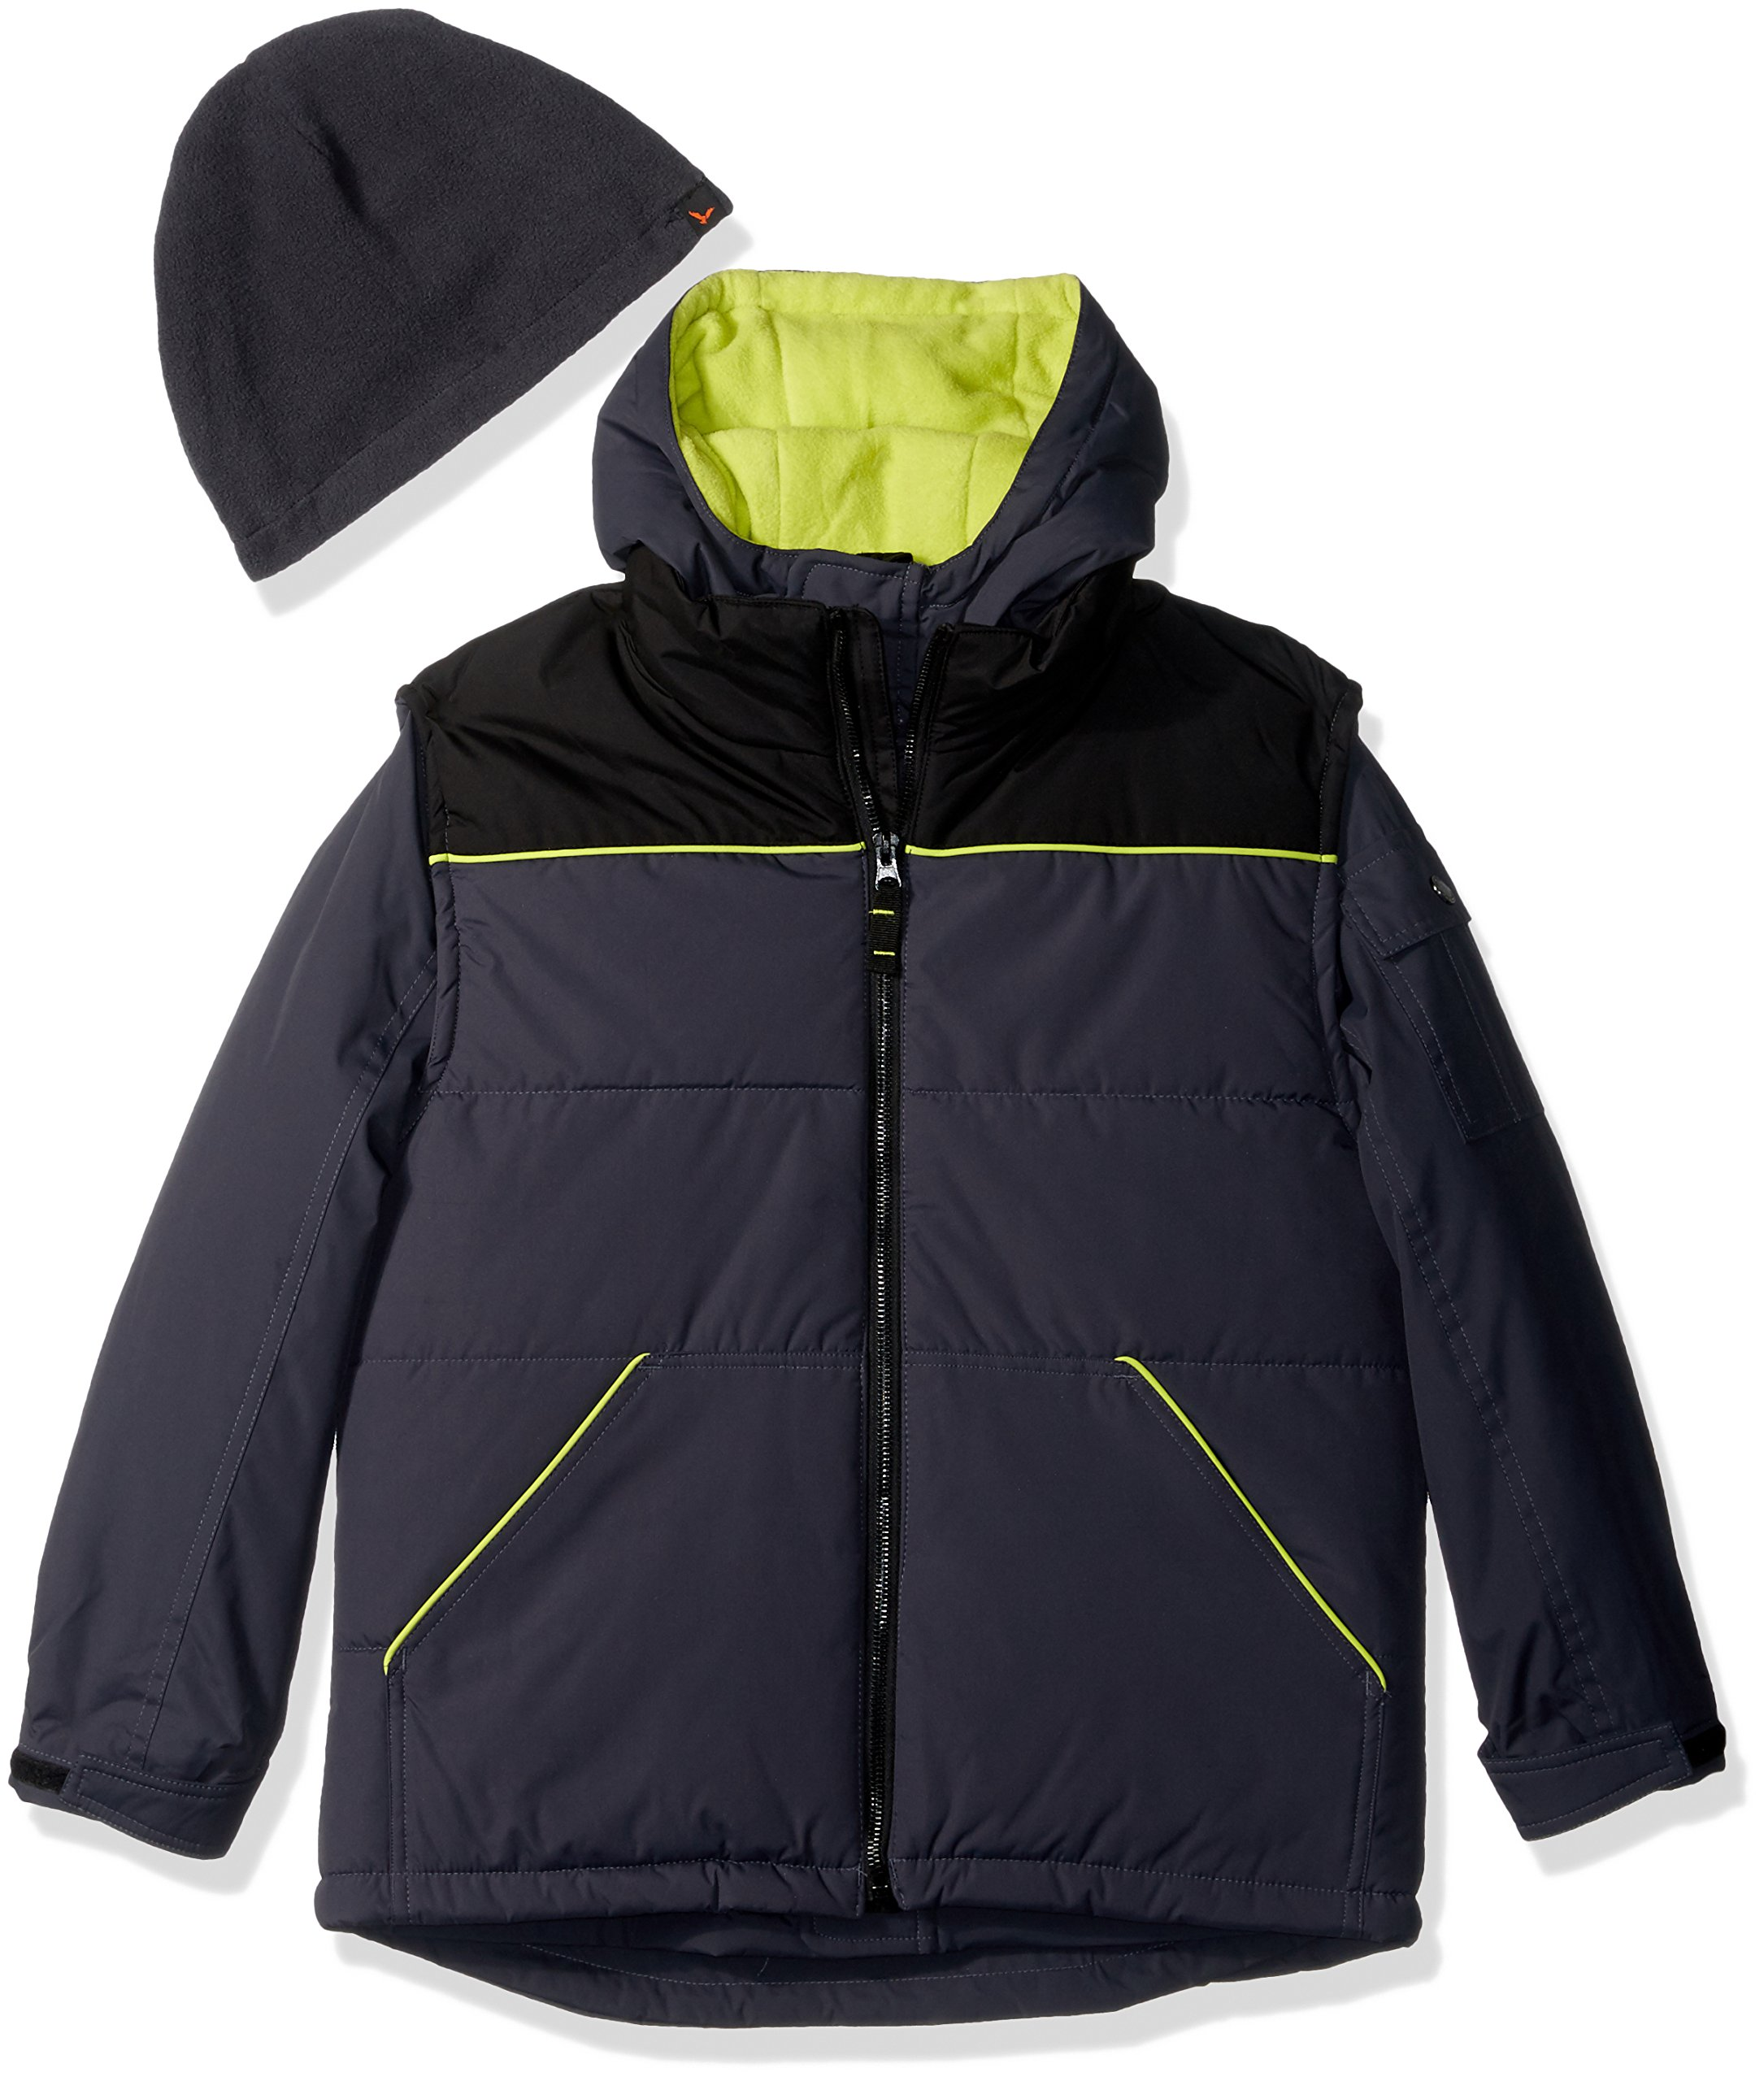 Hawke & Co. Little Boys' Systems 3 in 1 Jacket with Outer Vest, Sharkskin, 7 by Hawke & Co